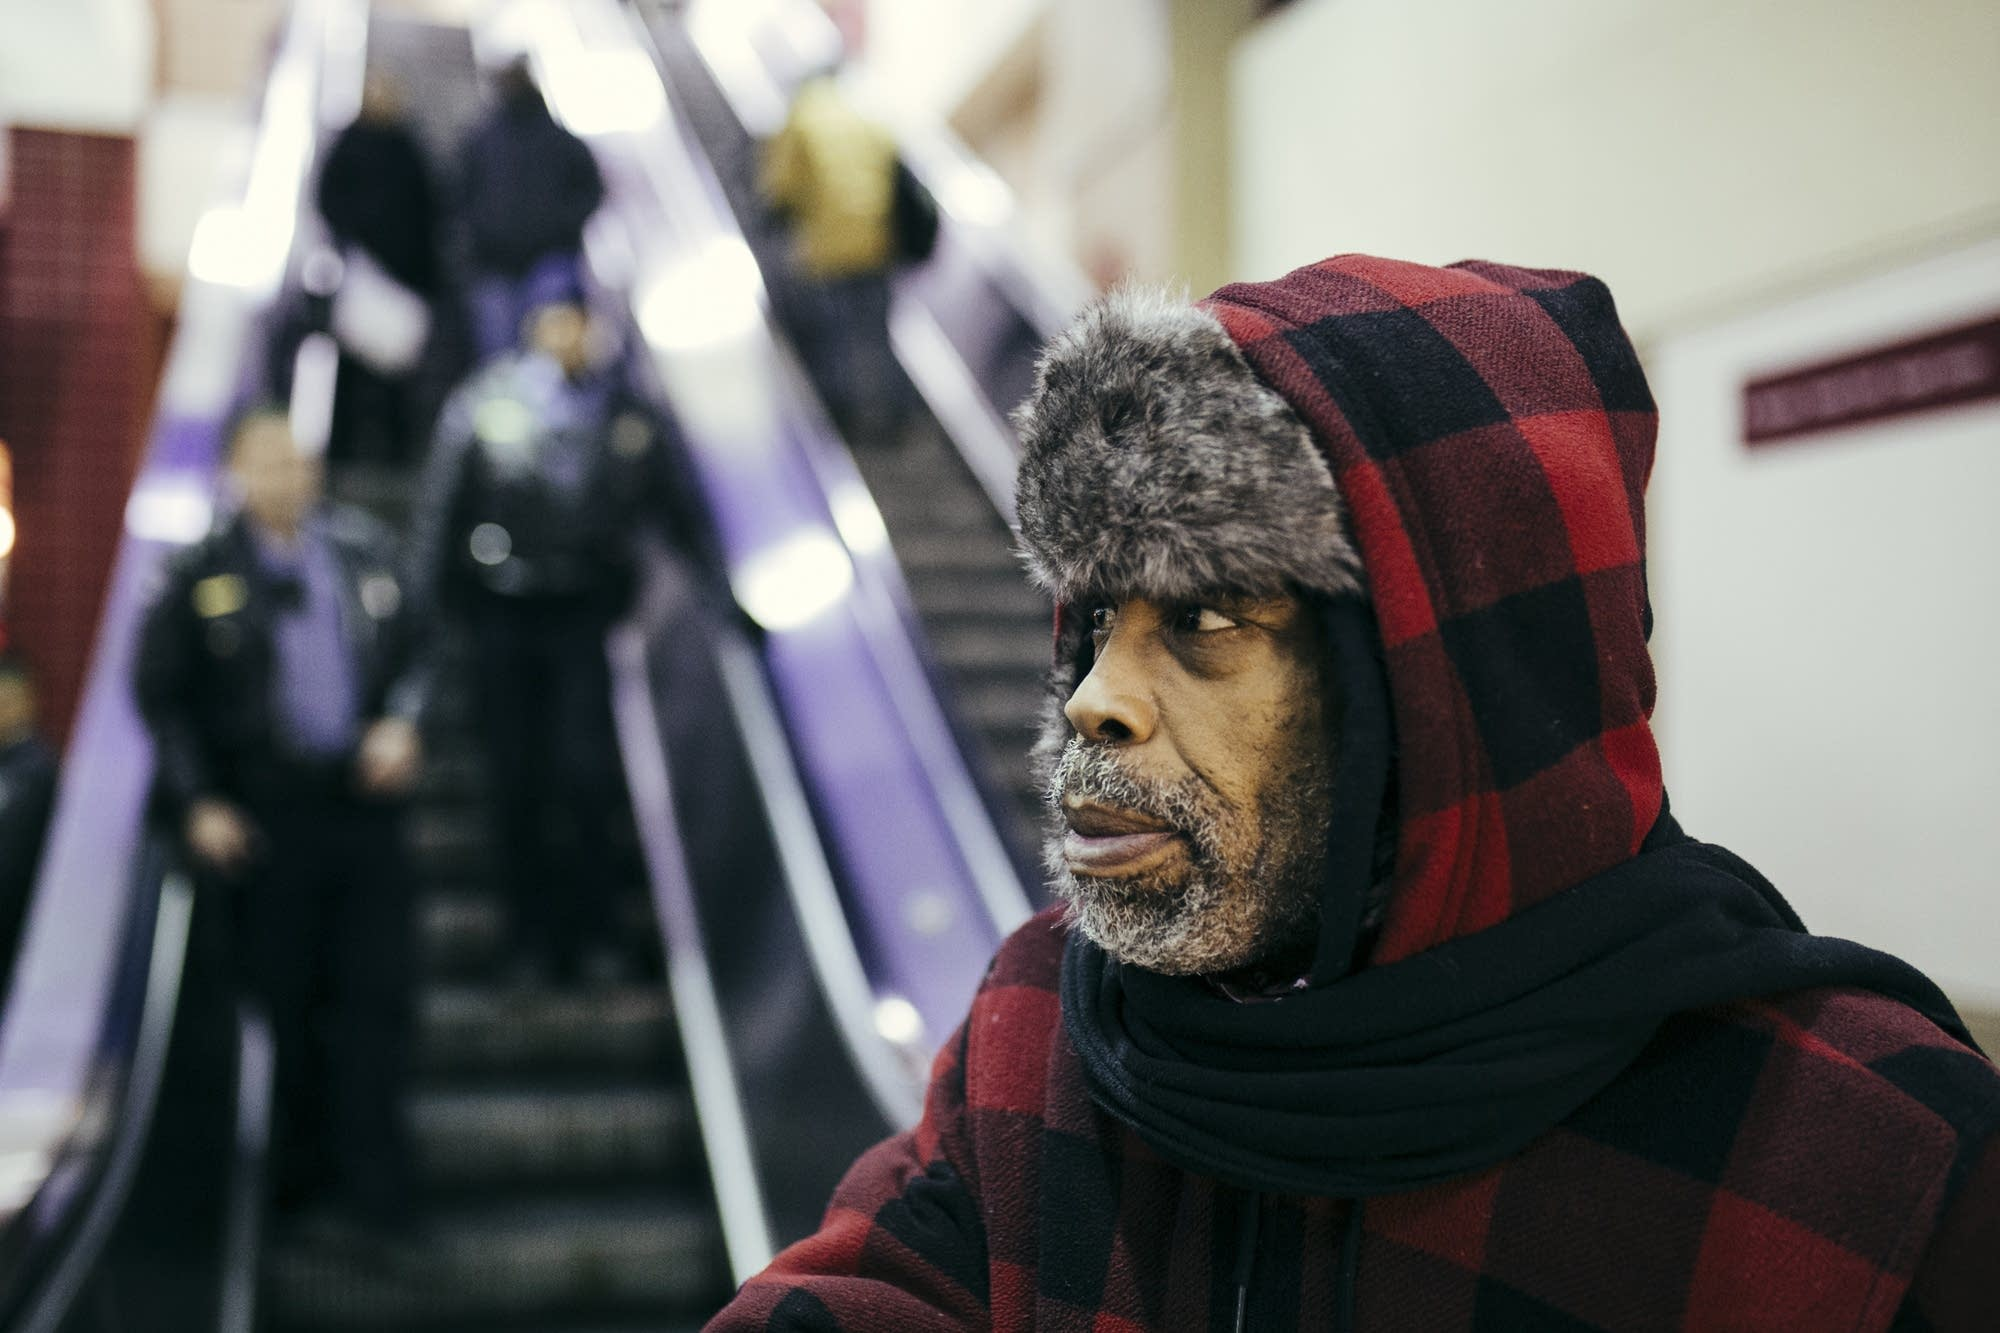 Gregory Graham, who is currently experiencing homelessness